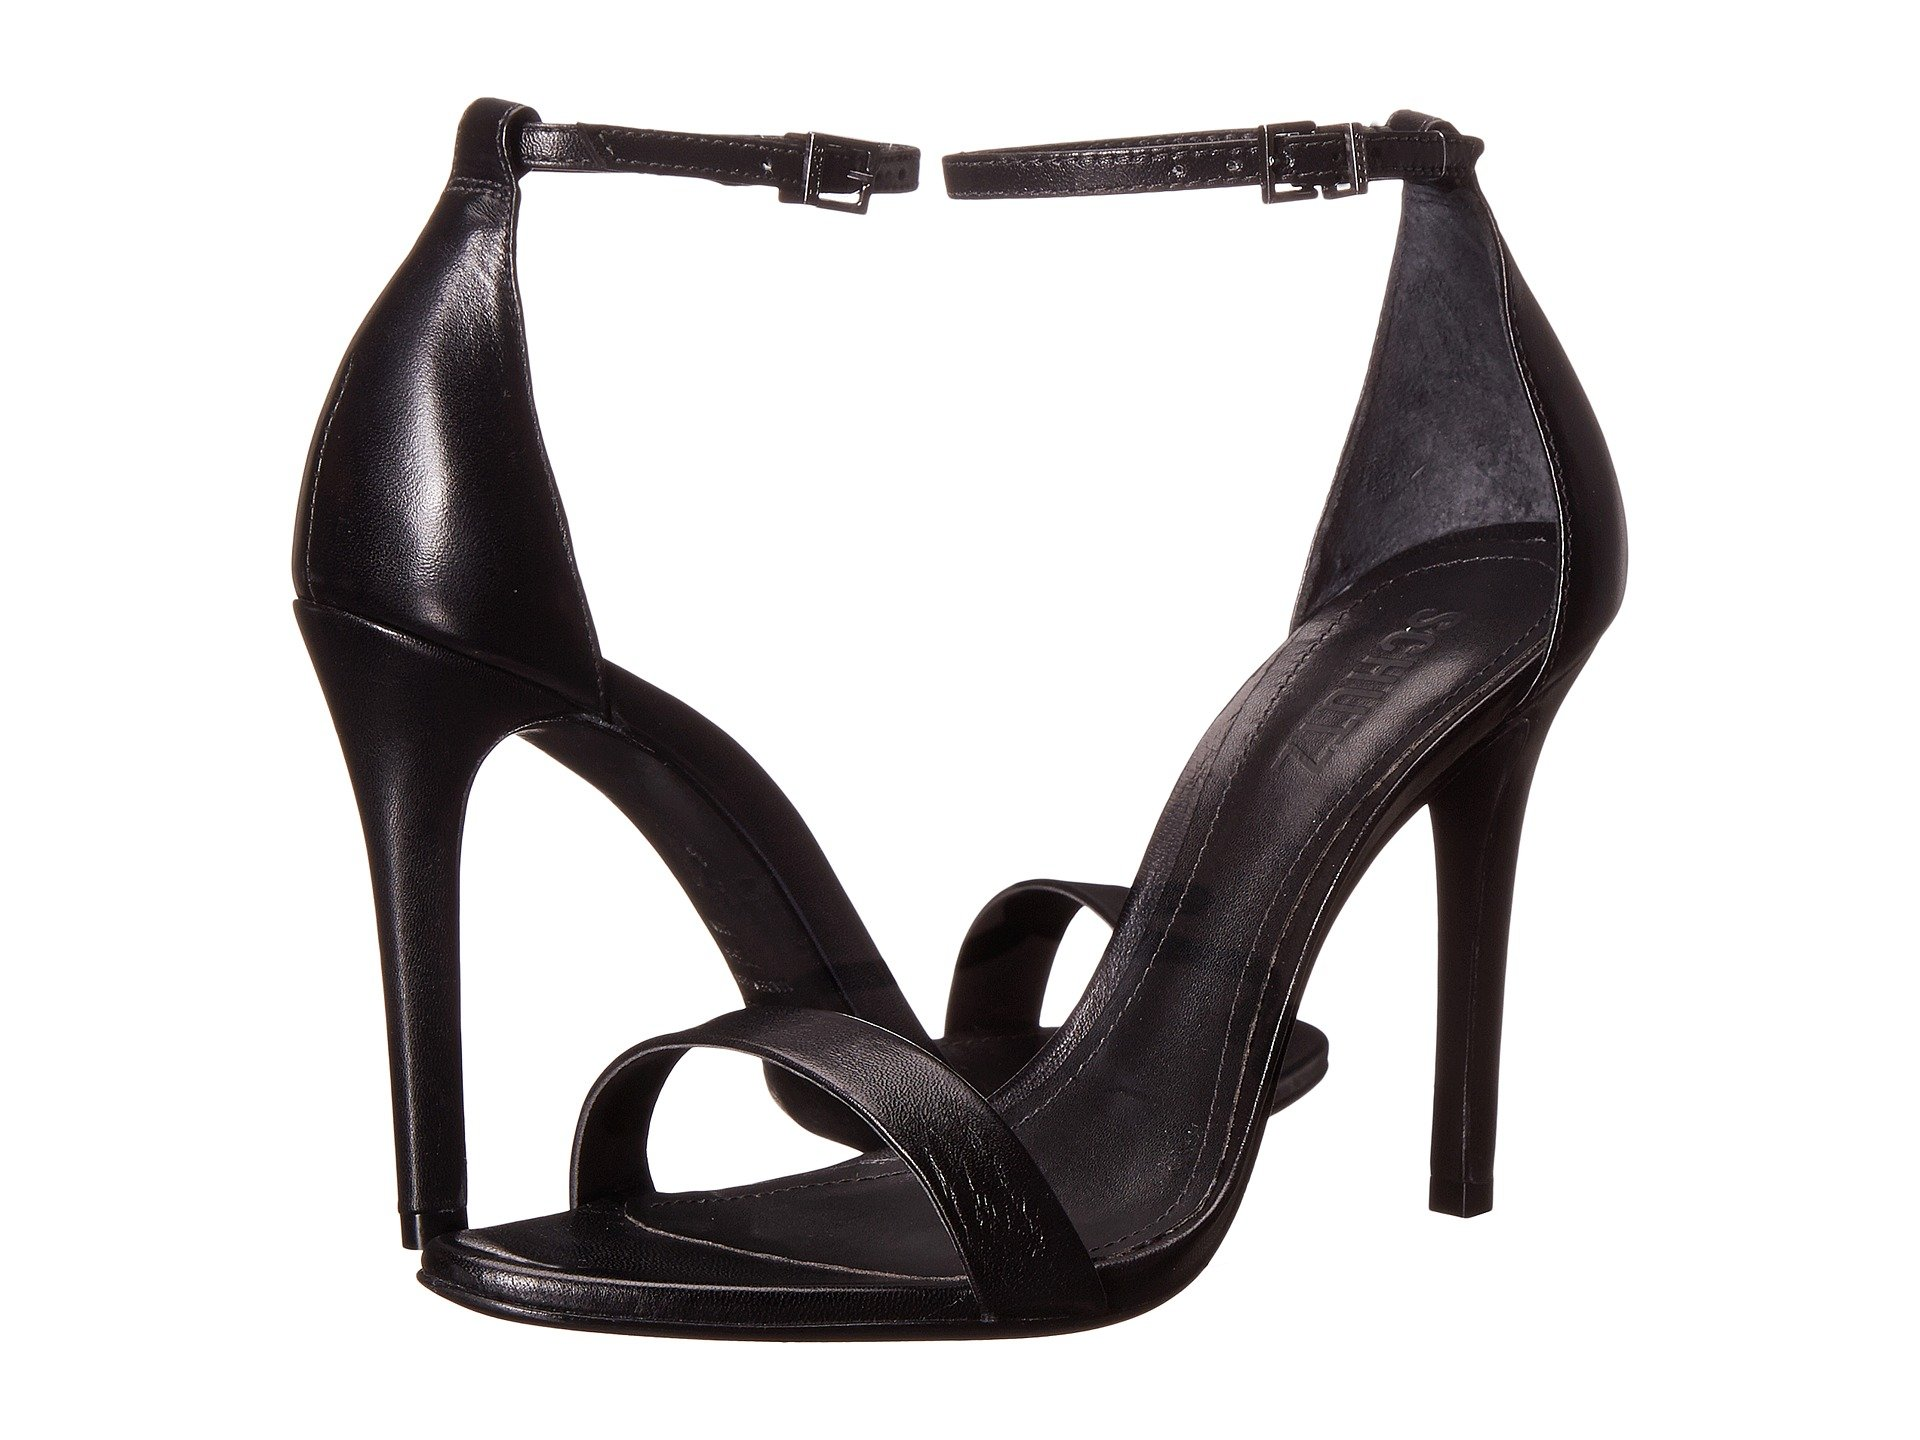 Schutz Women's Cadey-Lee Black 1 9 M US by SCHUTZ (Image #7)